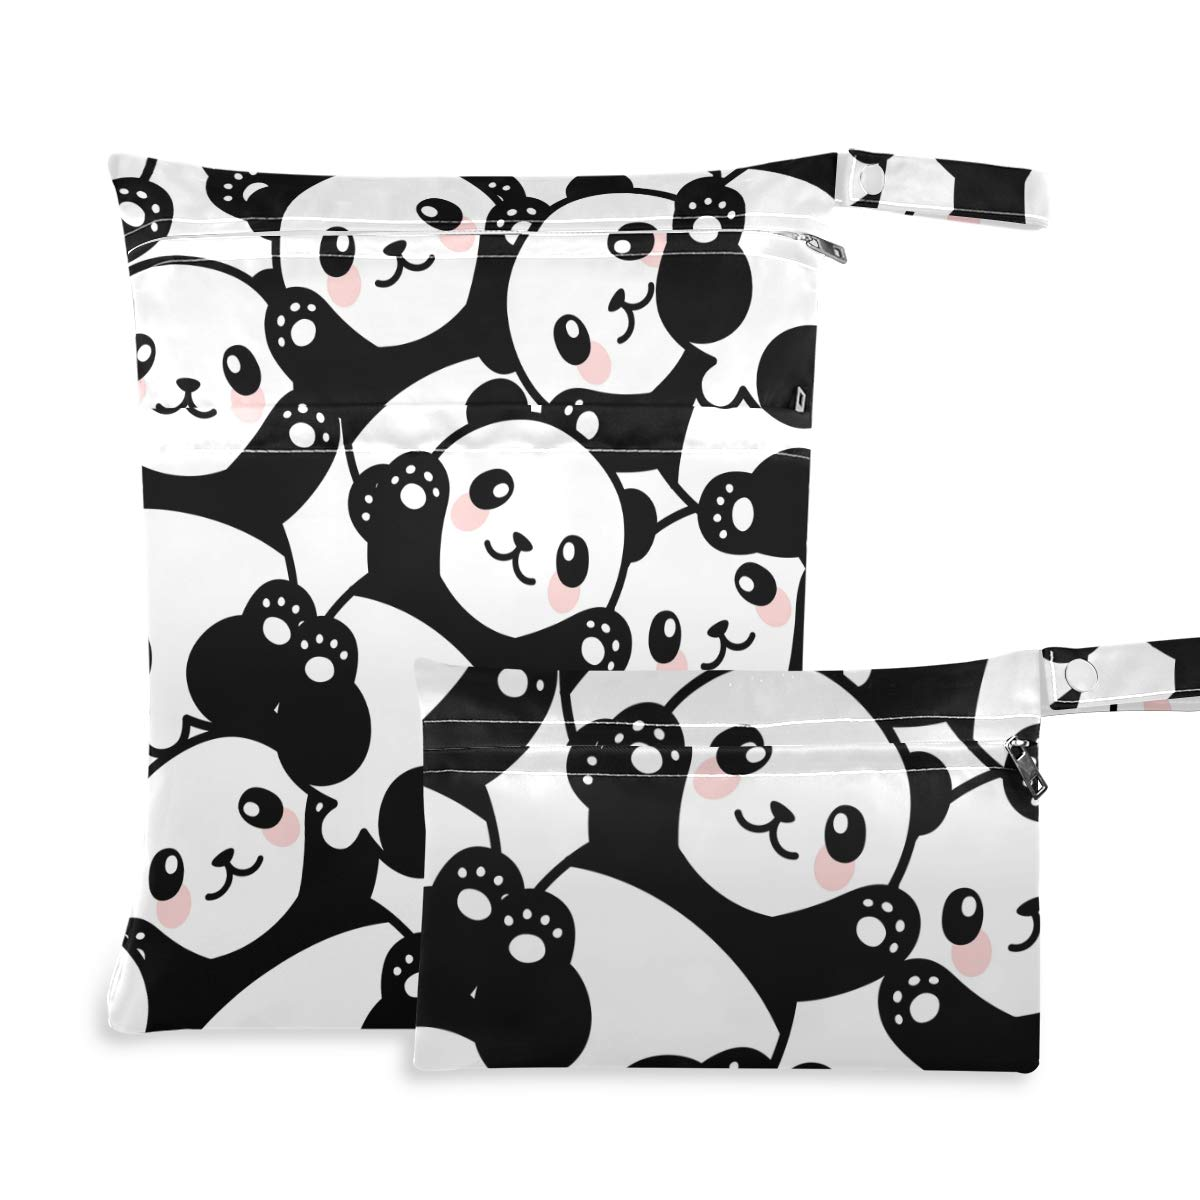 DAOXIANG Animals-Panda 2pcs Wet Bag Multipurpose Wet Dry Bag - for Cloth Diaper, Swimsuit & Travel Washable Reusable